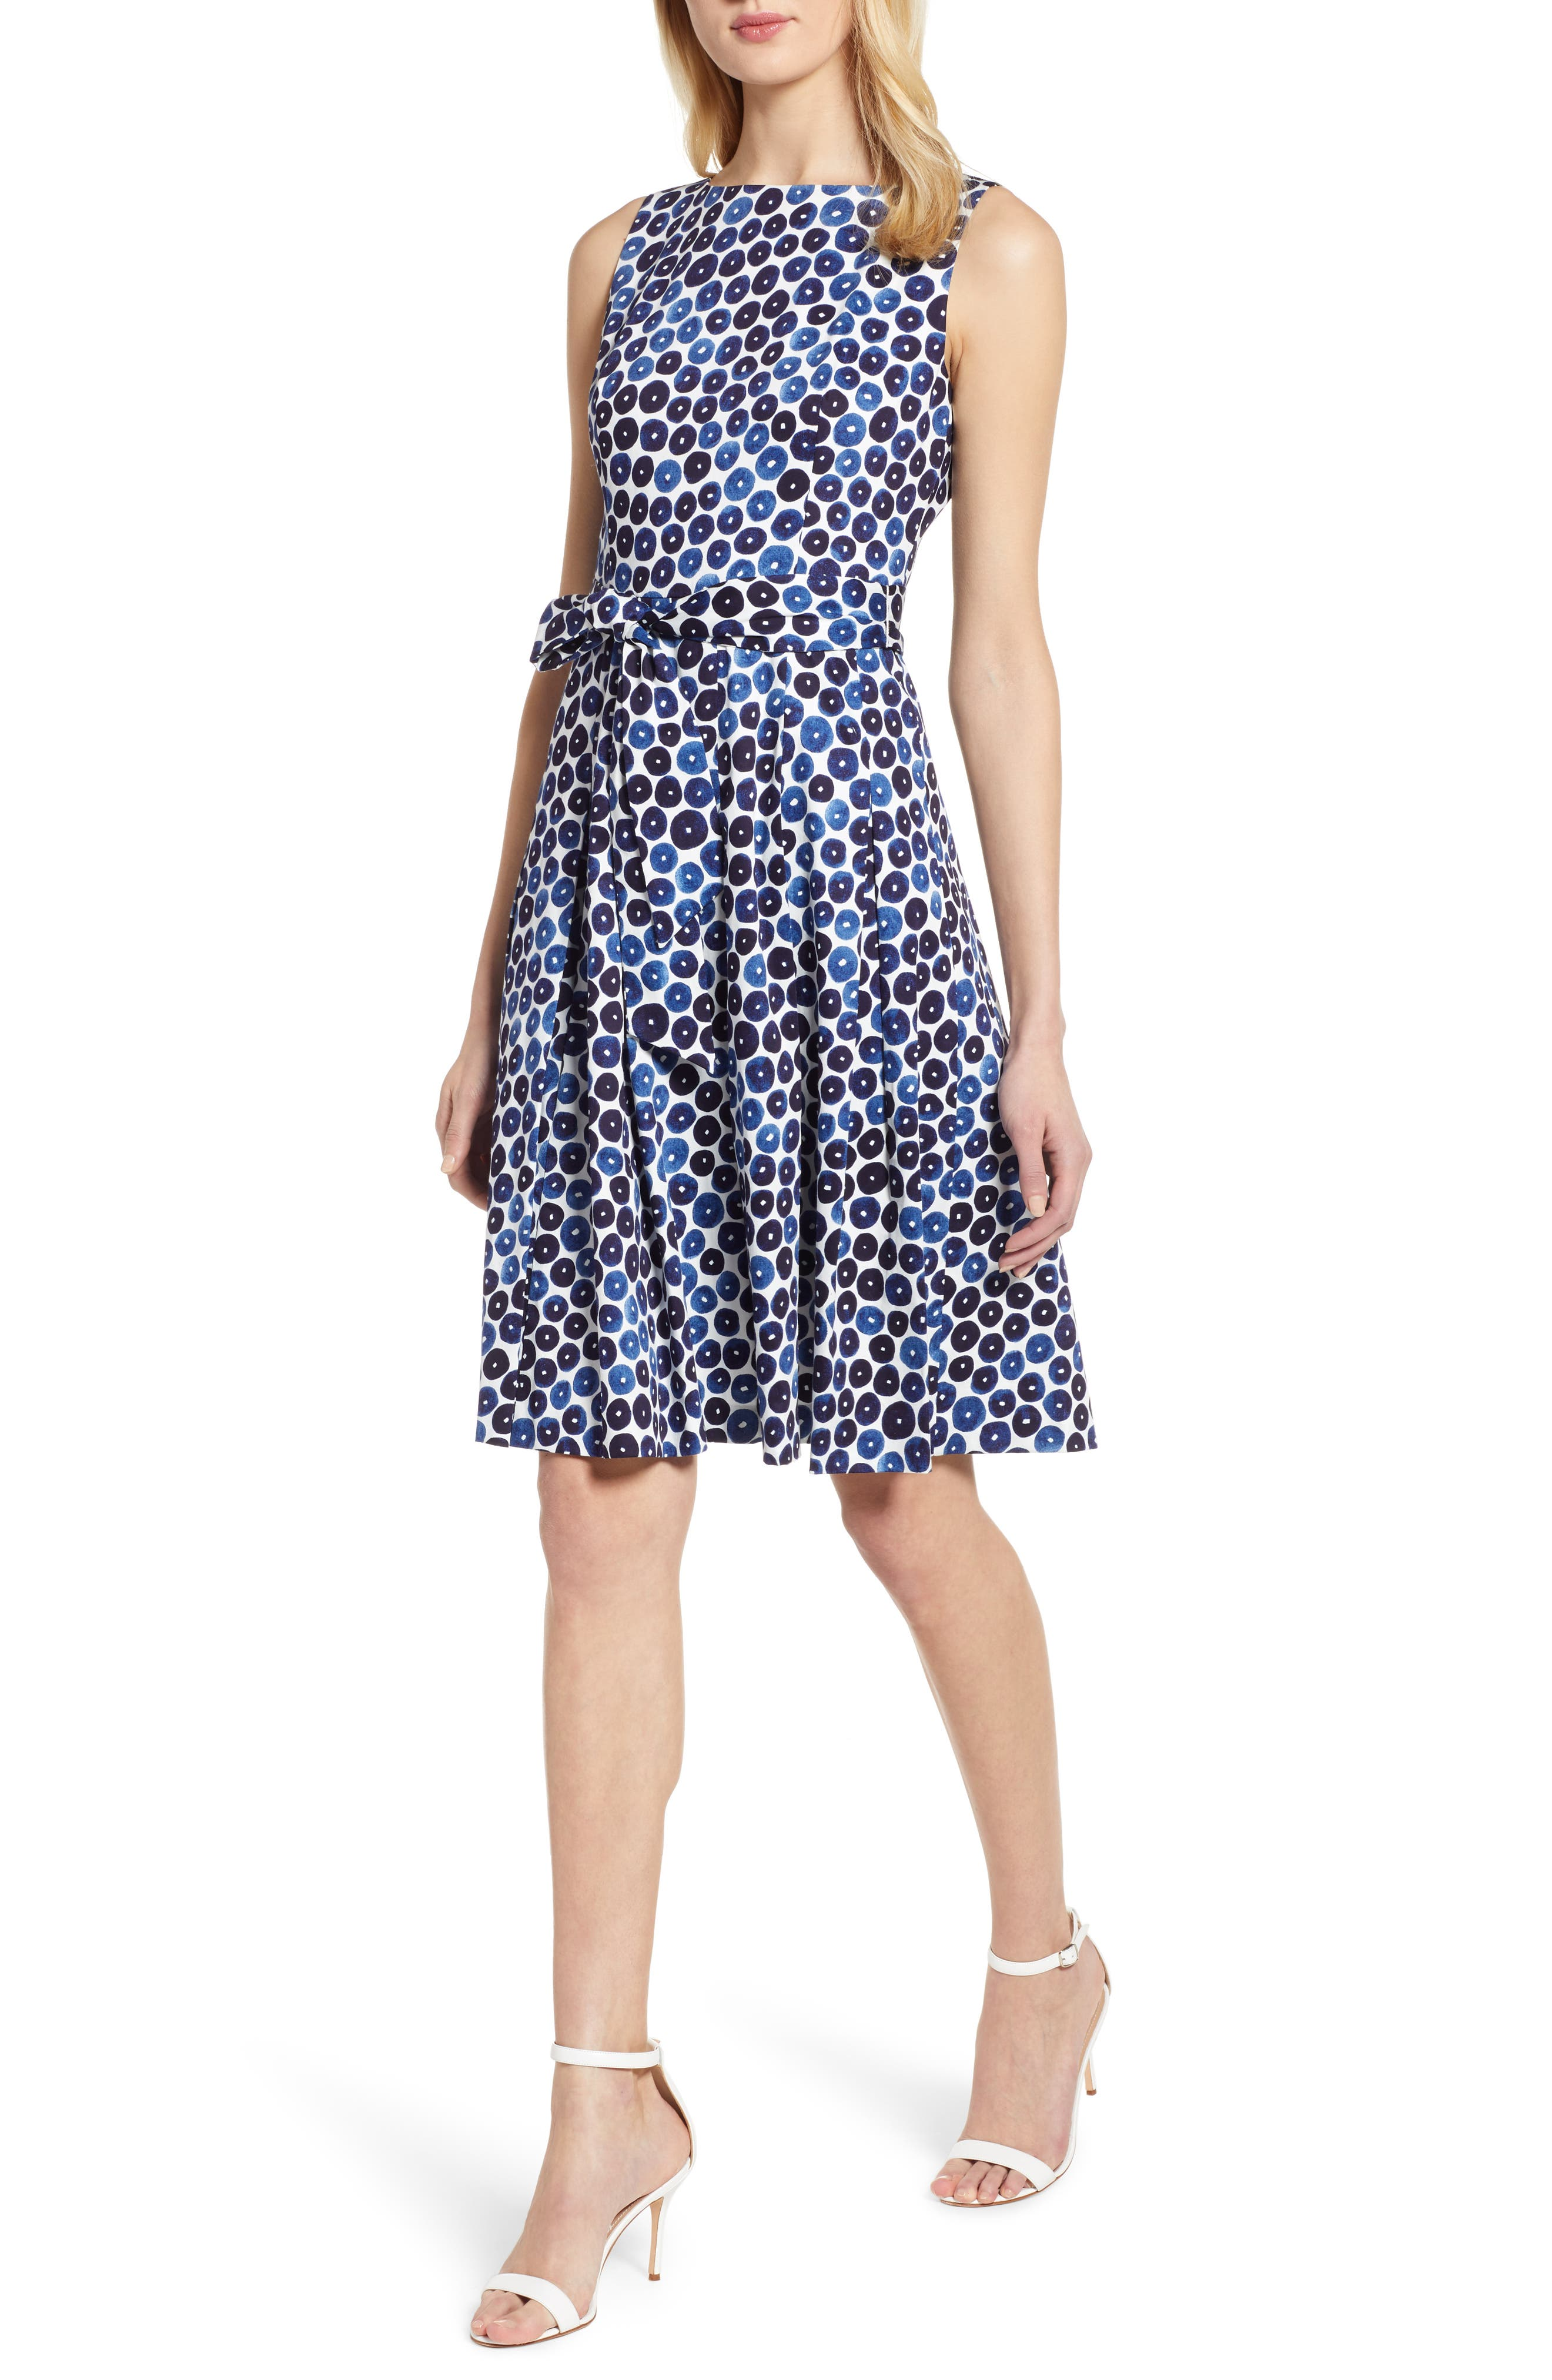 Anne Klein Neroli Print Fit & Flare Dress, White